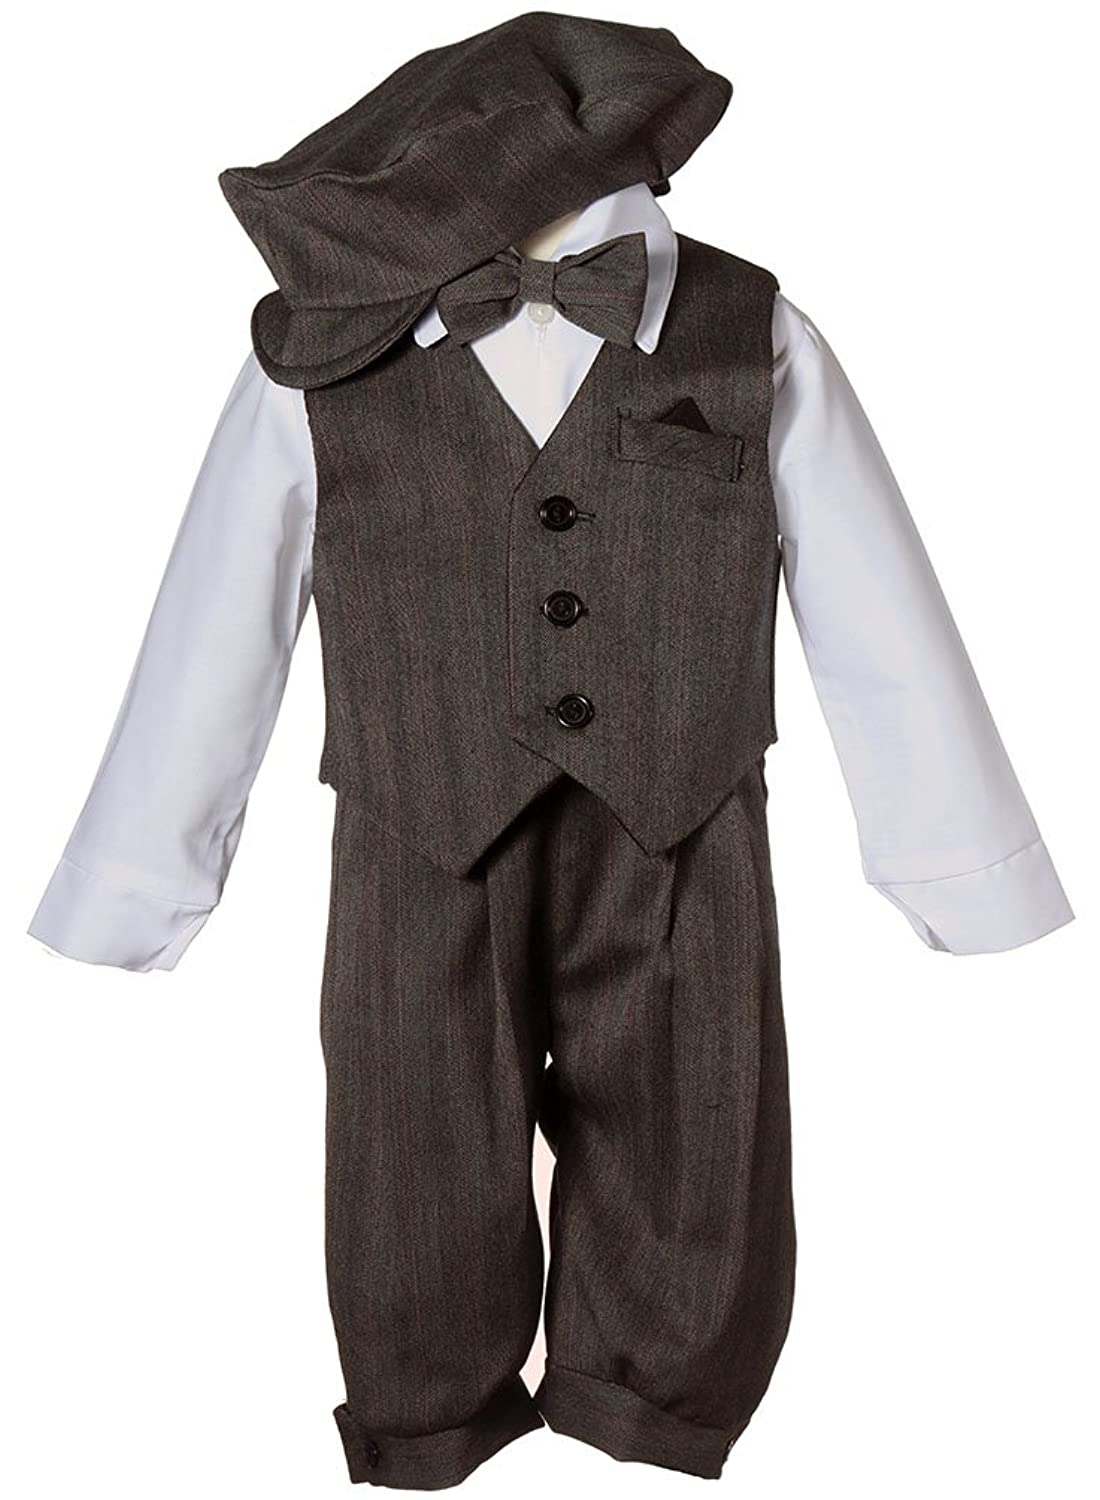 1940s Children's Clothing: Girls, Boys, Baby, Toddler Boys Toddler Knicker Set with Vest and Hat - Vintage Grey Stripe $34.95 AT vintagedancer.com